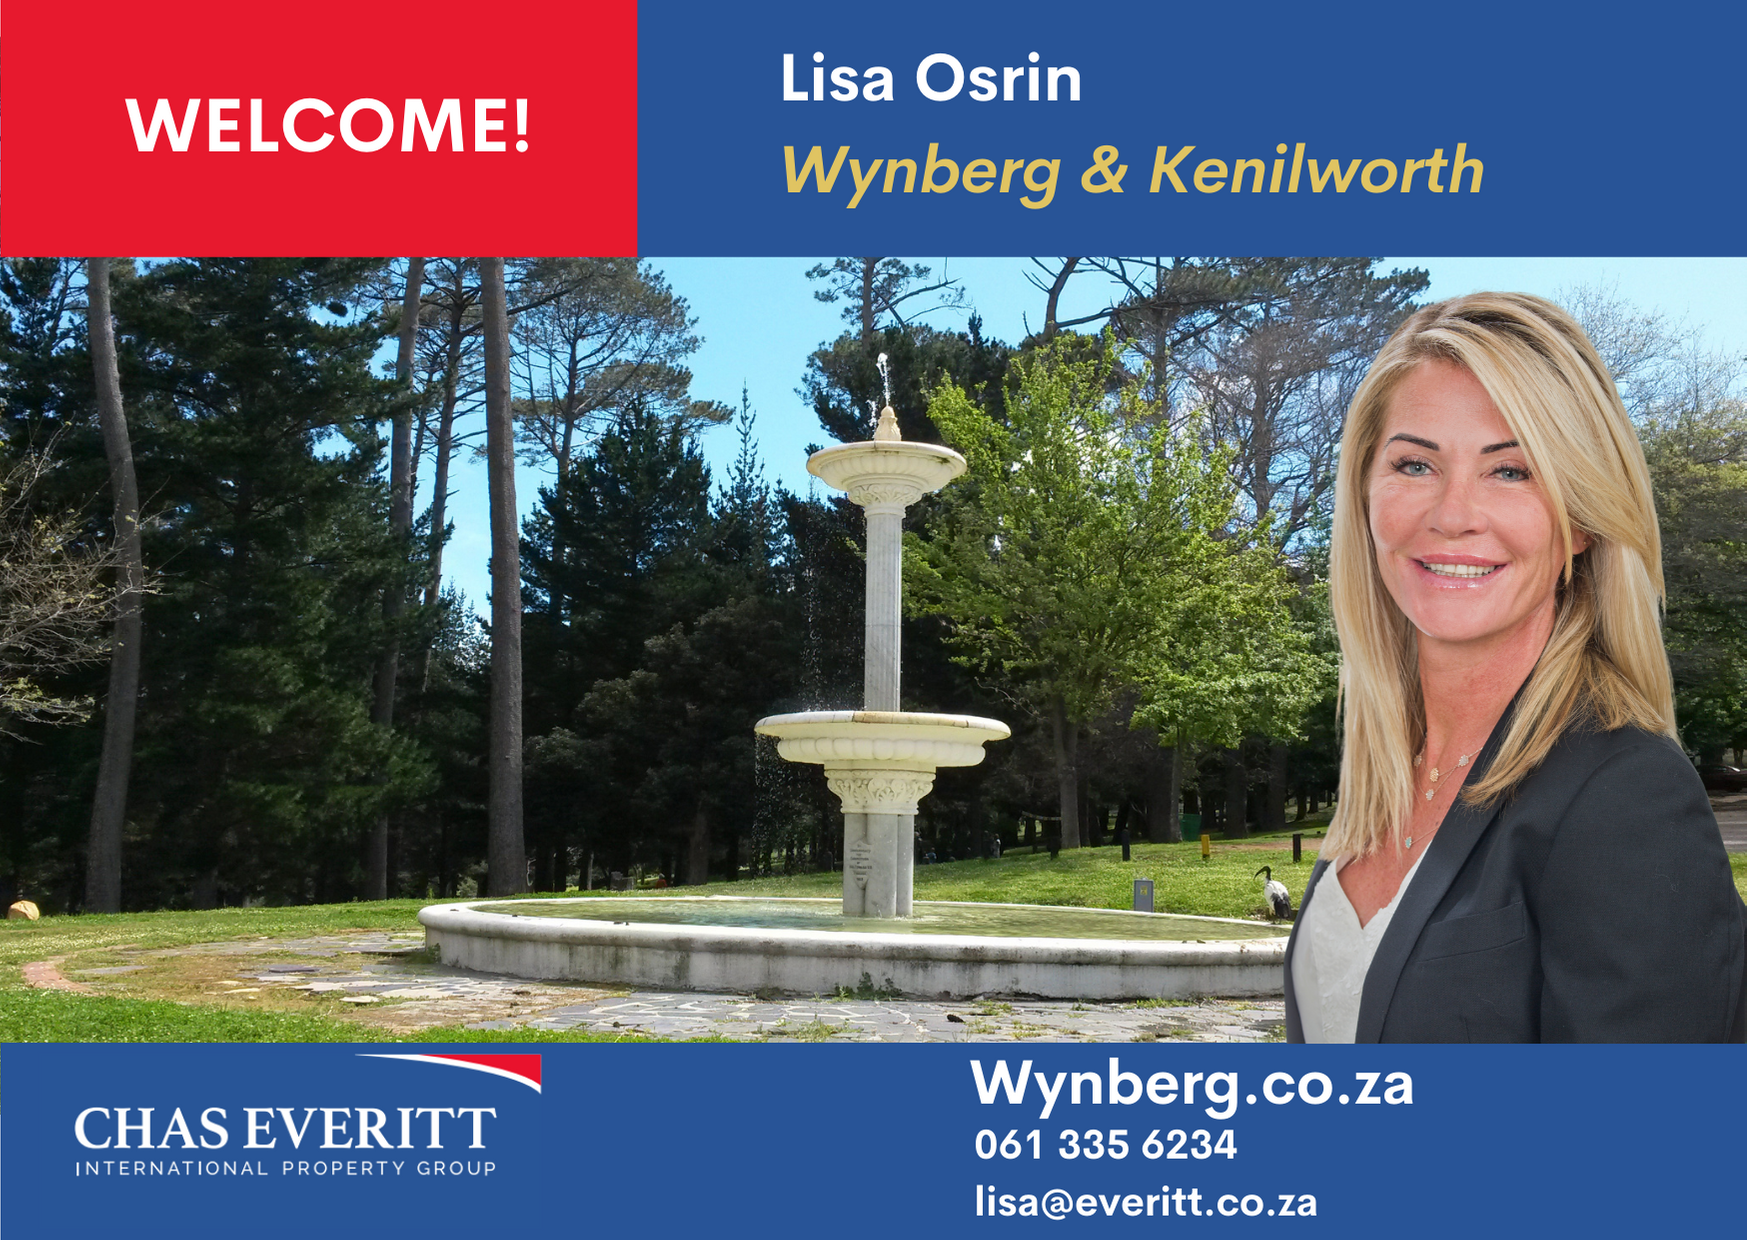 Welcome Lisa Osrin